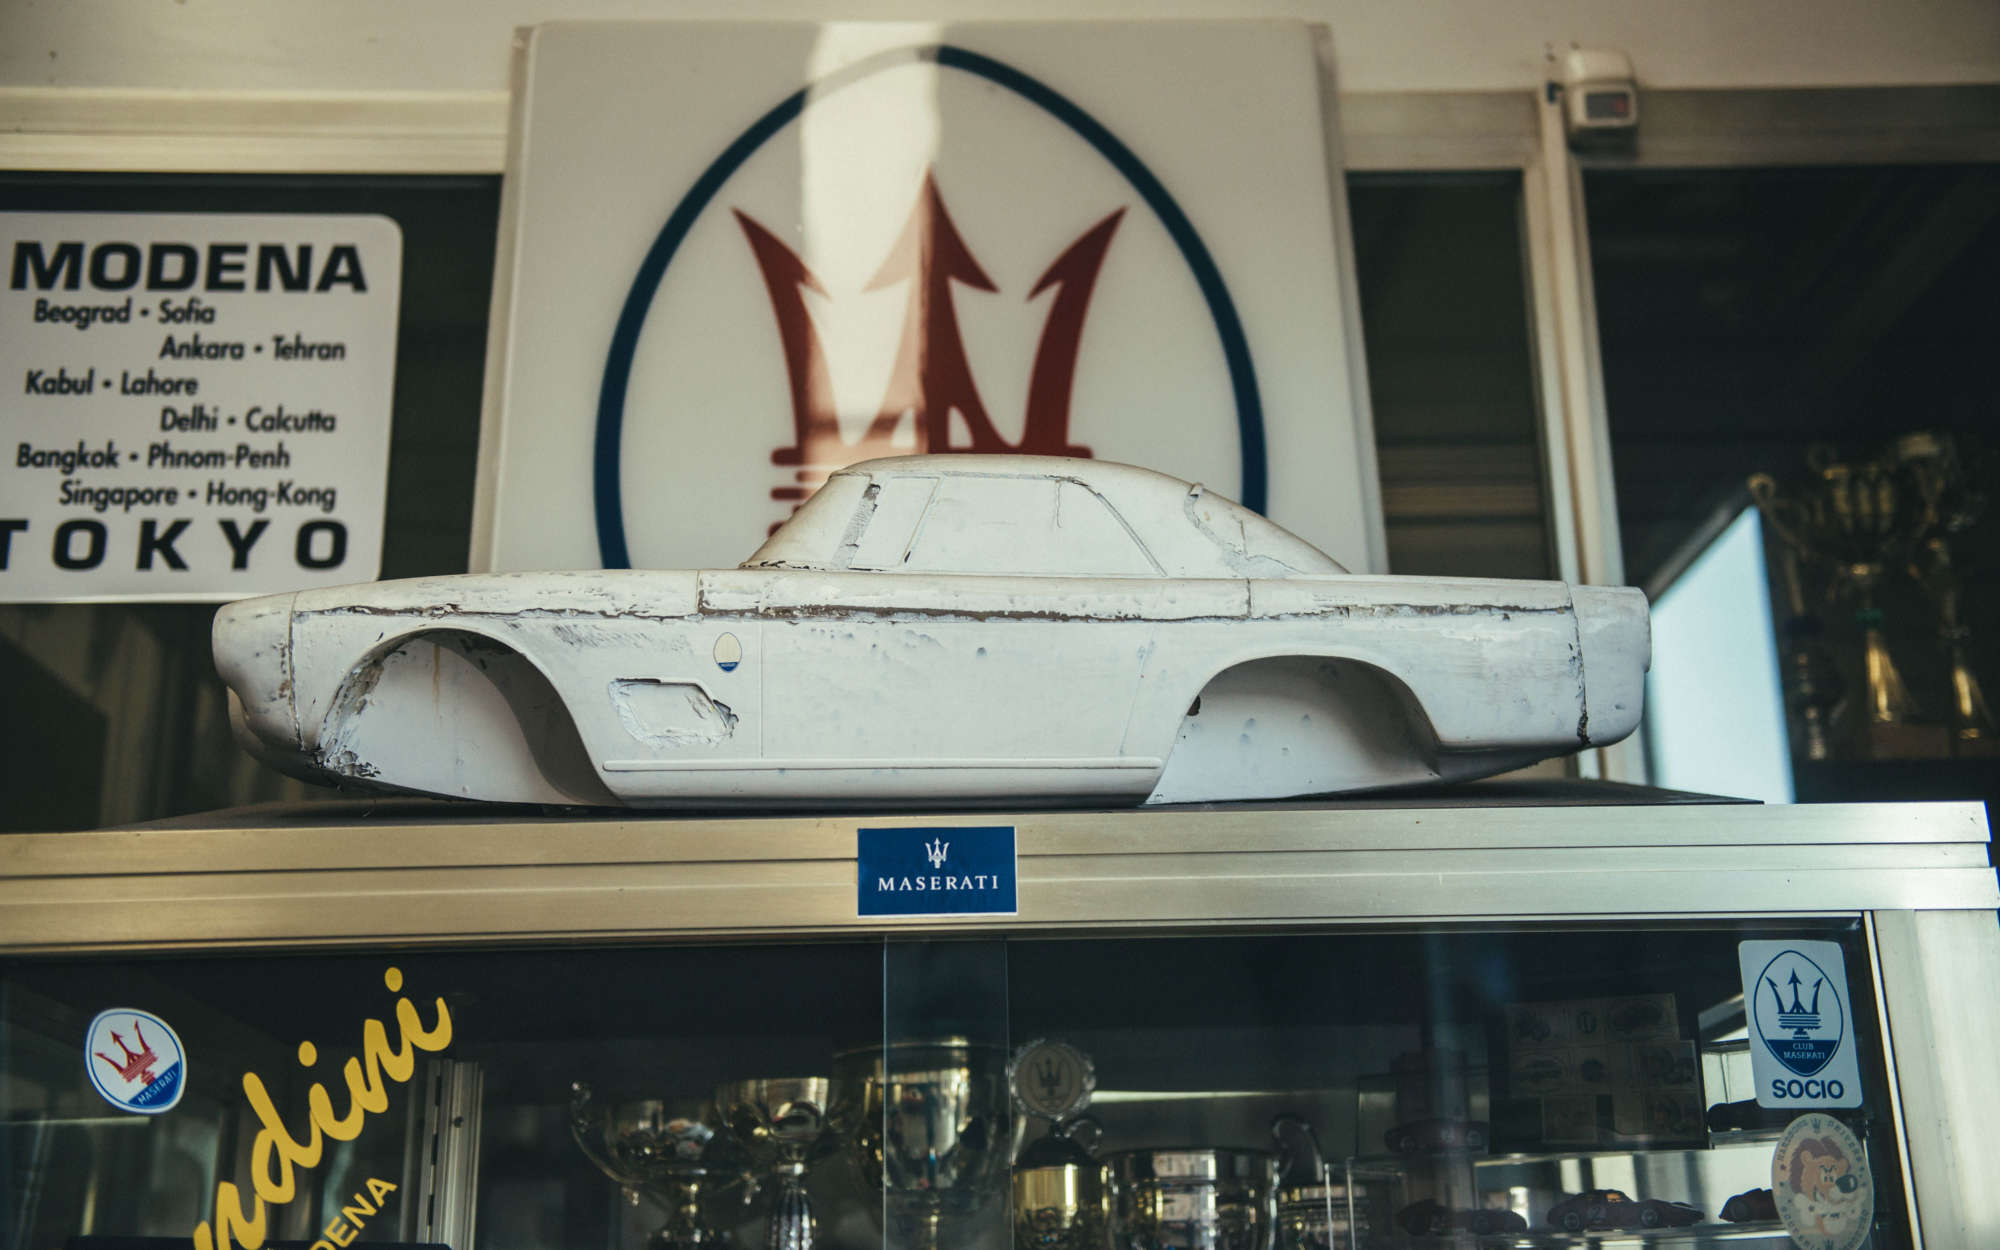 Candini Maserati footer content images 6000 3750